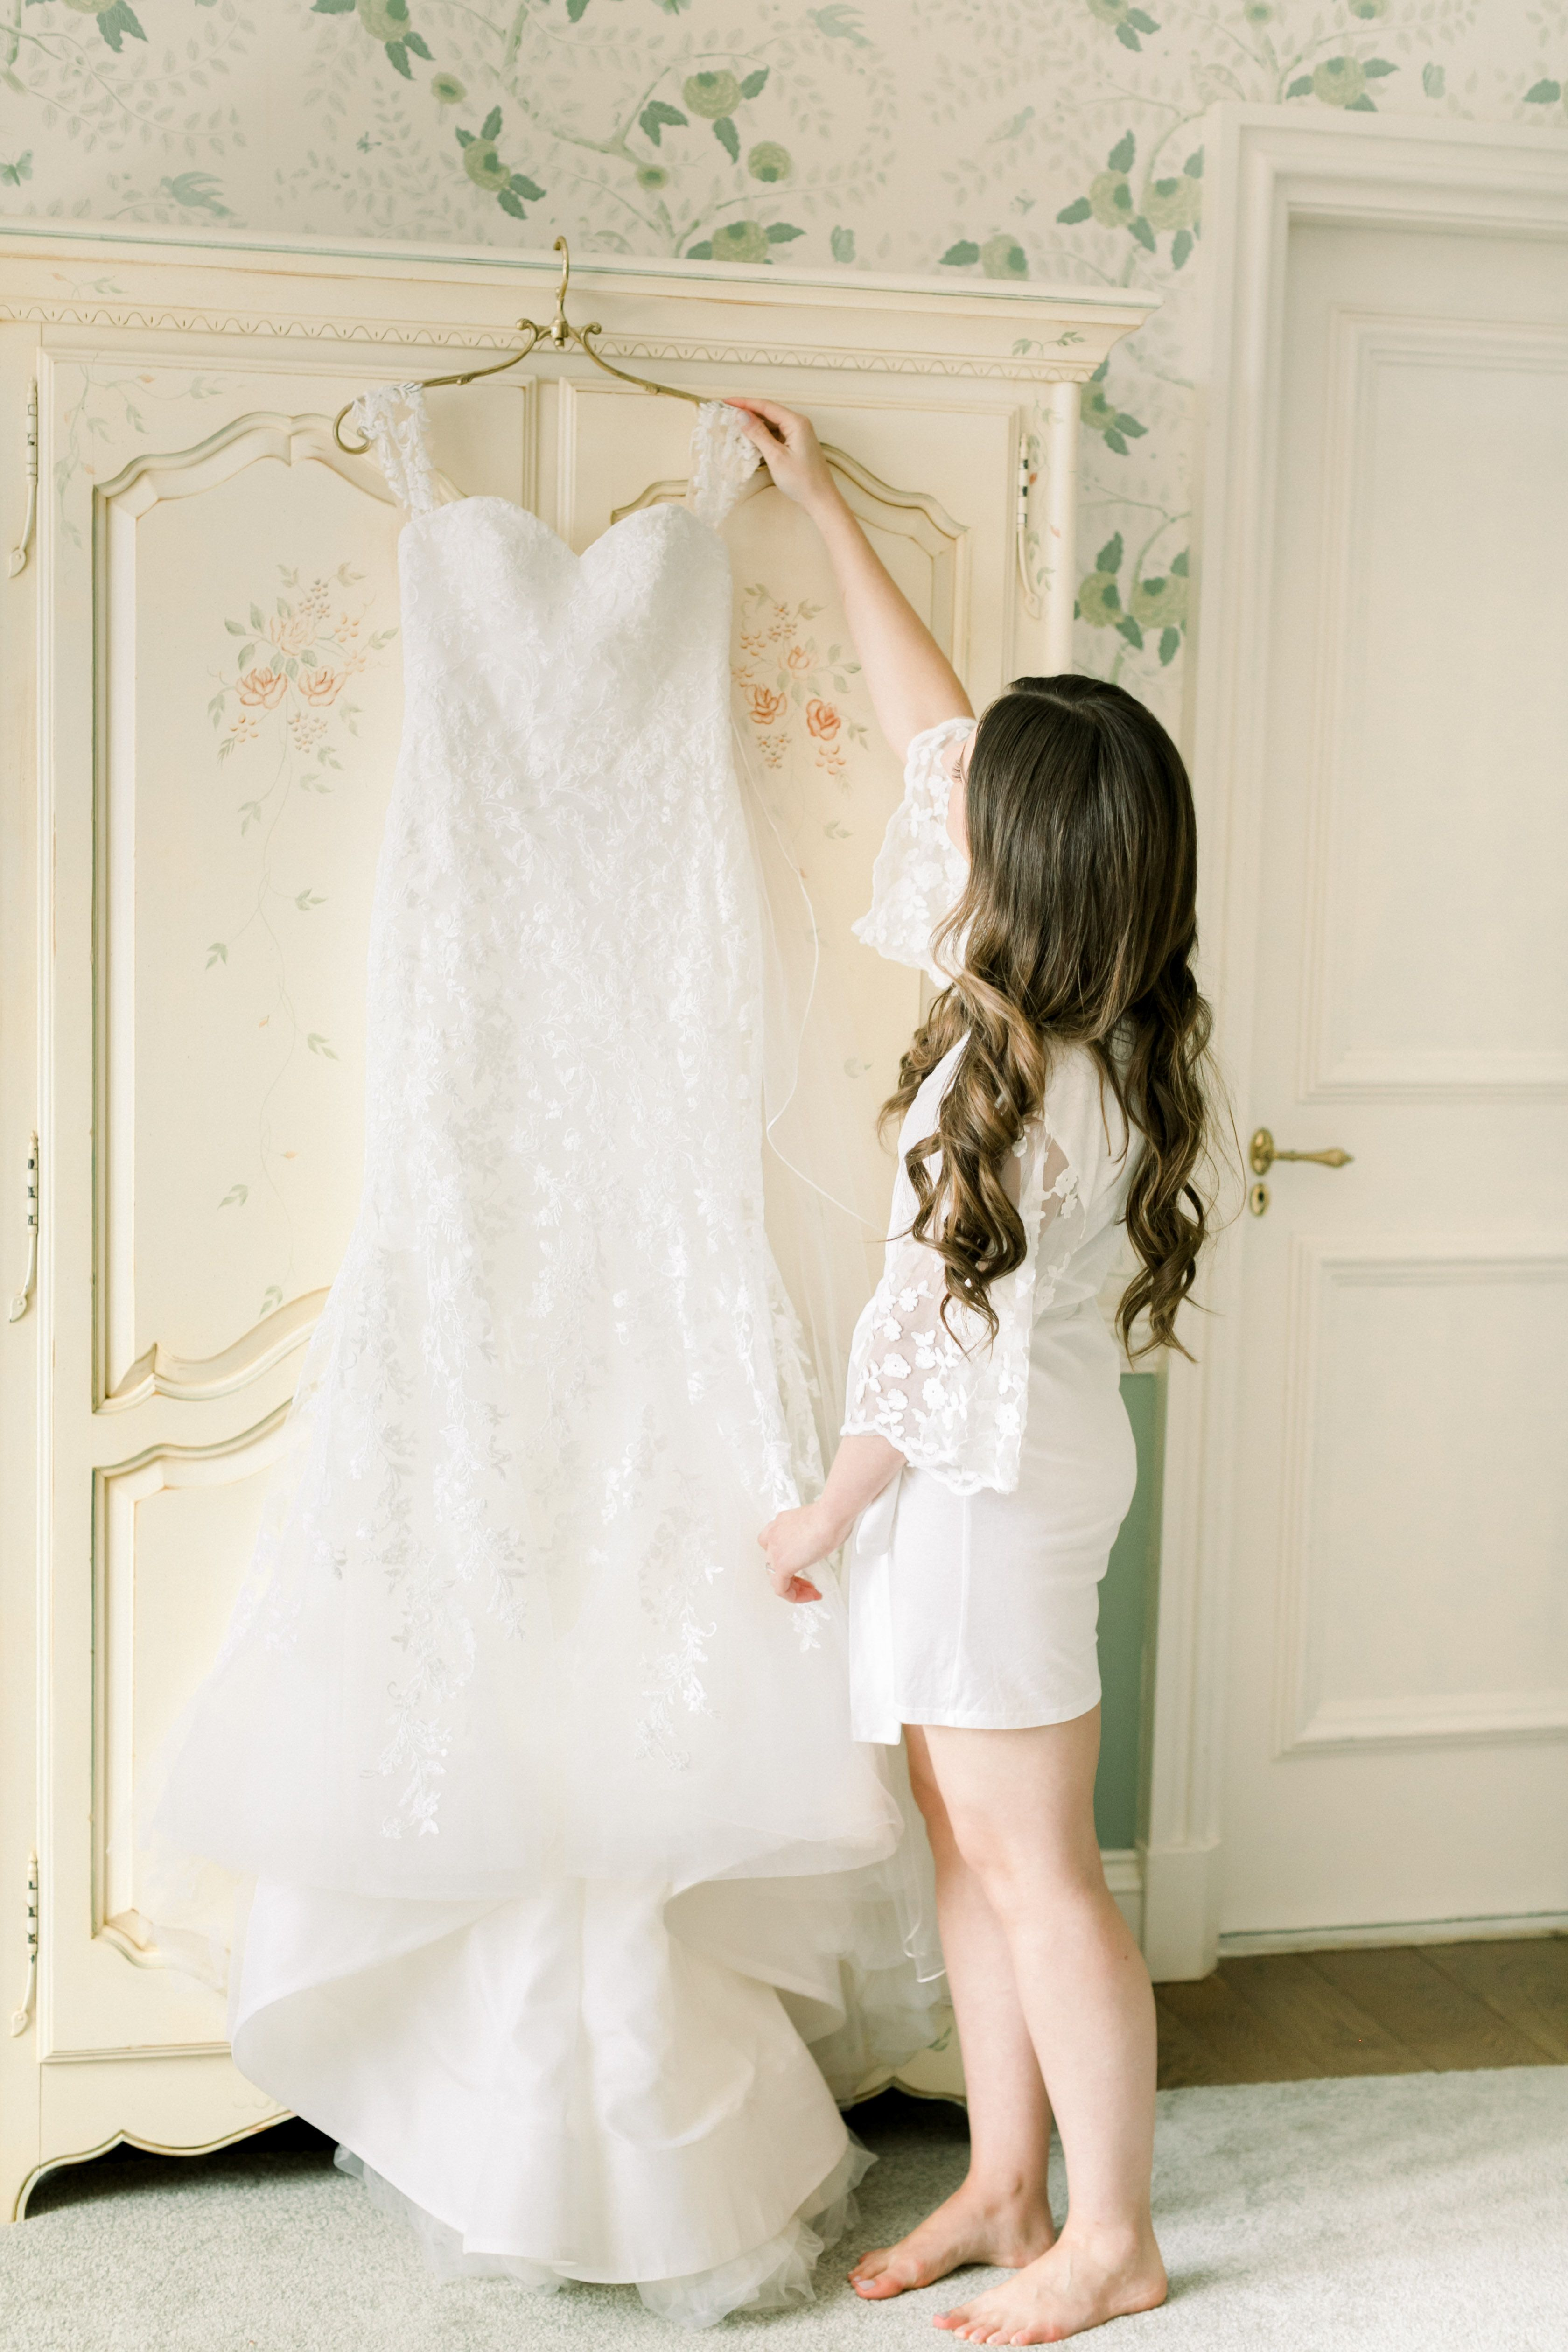 Wedding Gown Preservation Storing Tips By Designer Kelly Faetanini In 2020 Wedding Gown Preservation Gown Preservation Wedding Dresses